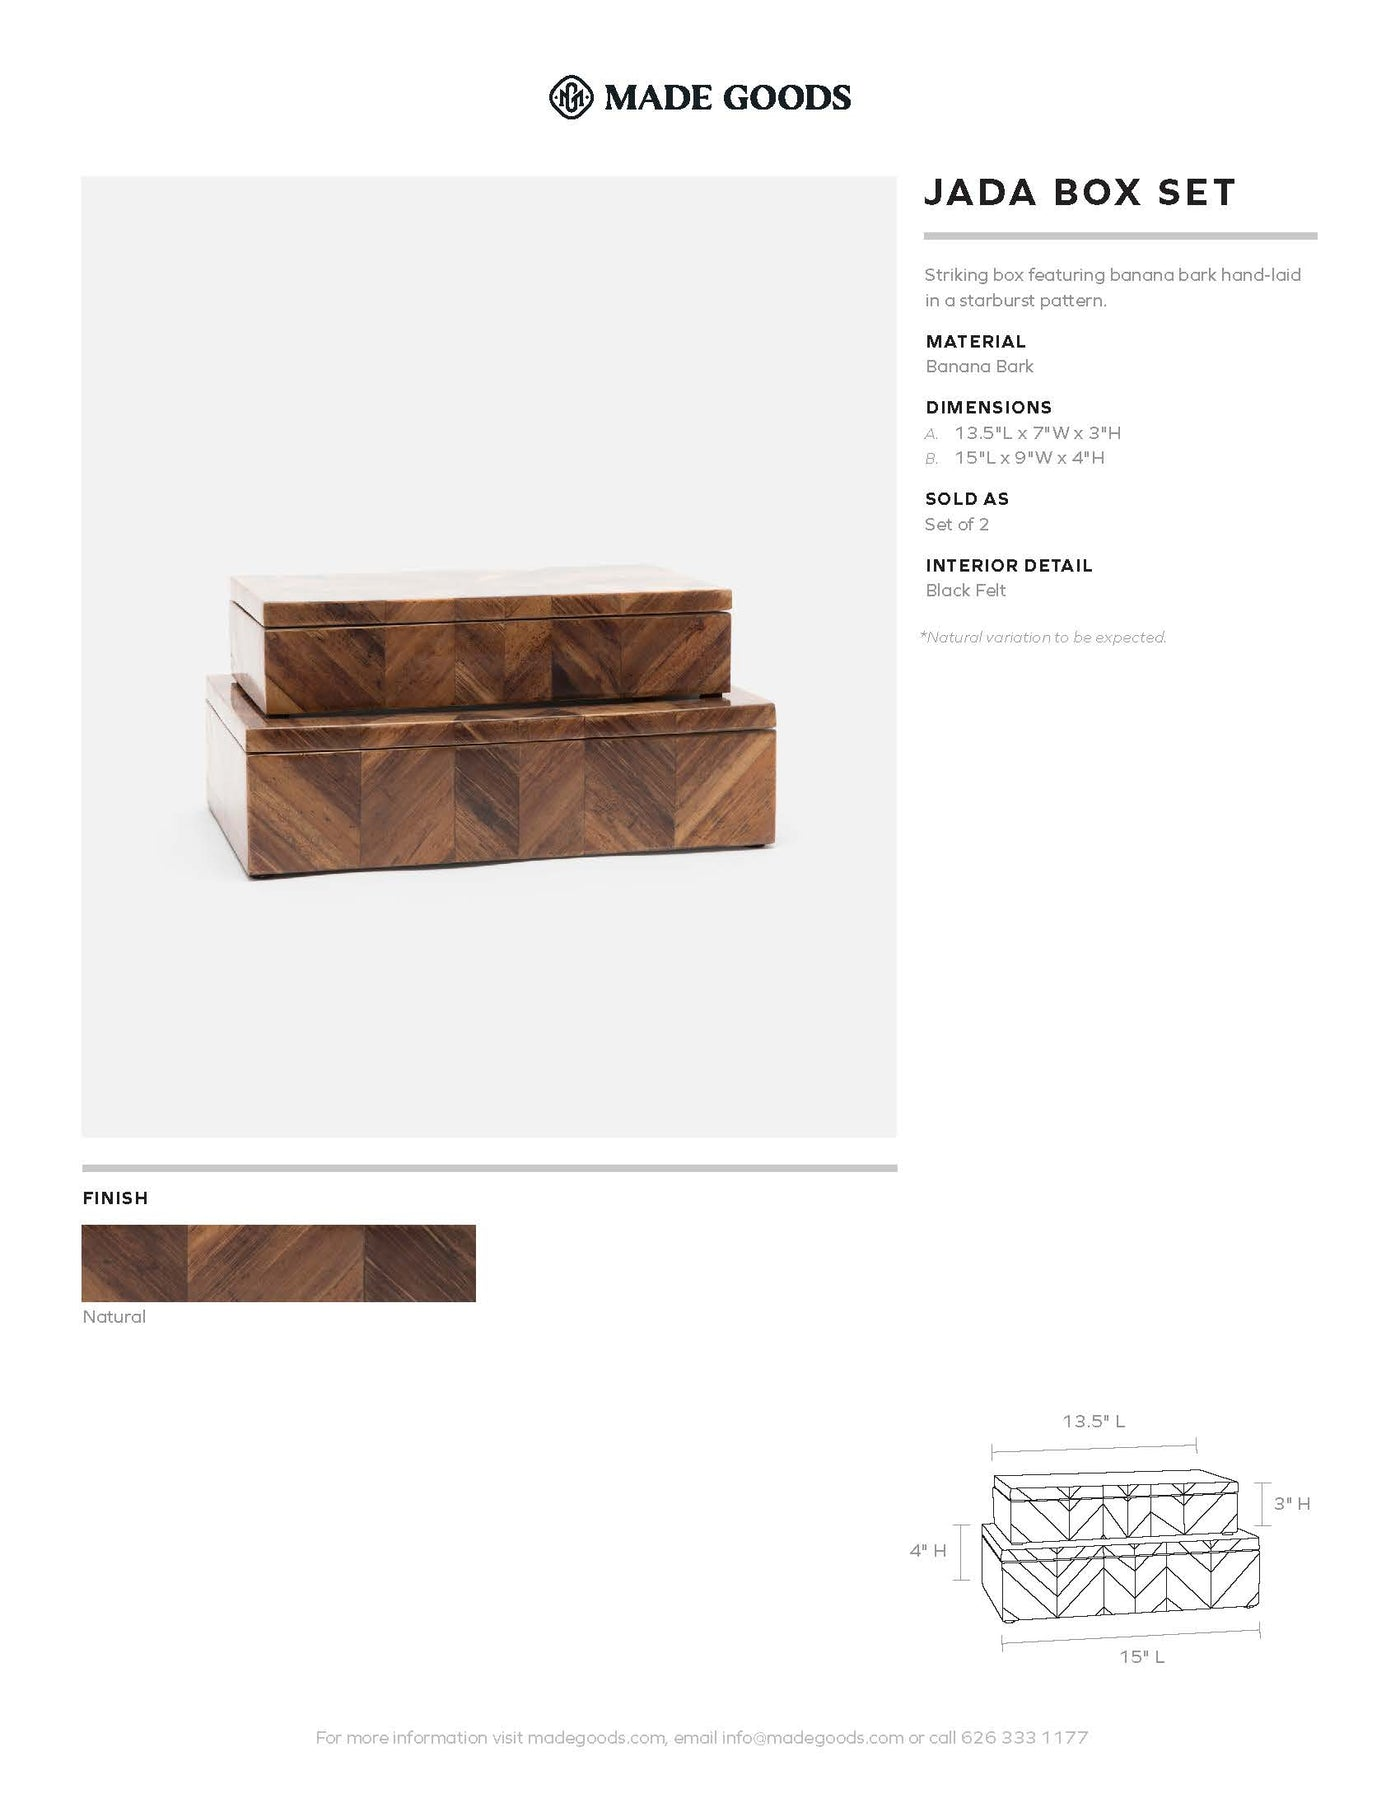 made goods jada box set tearsheet